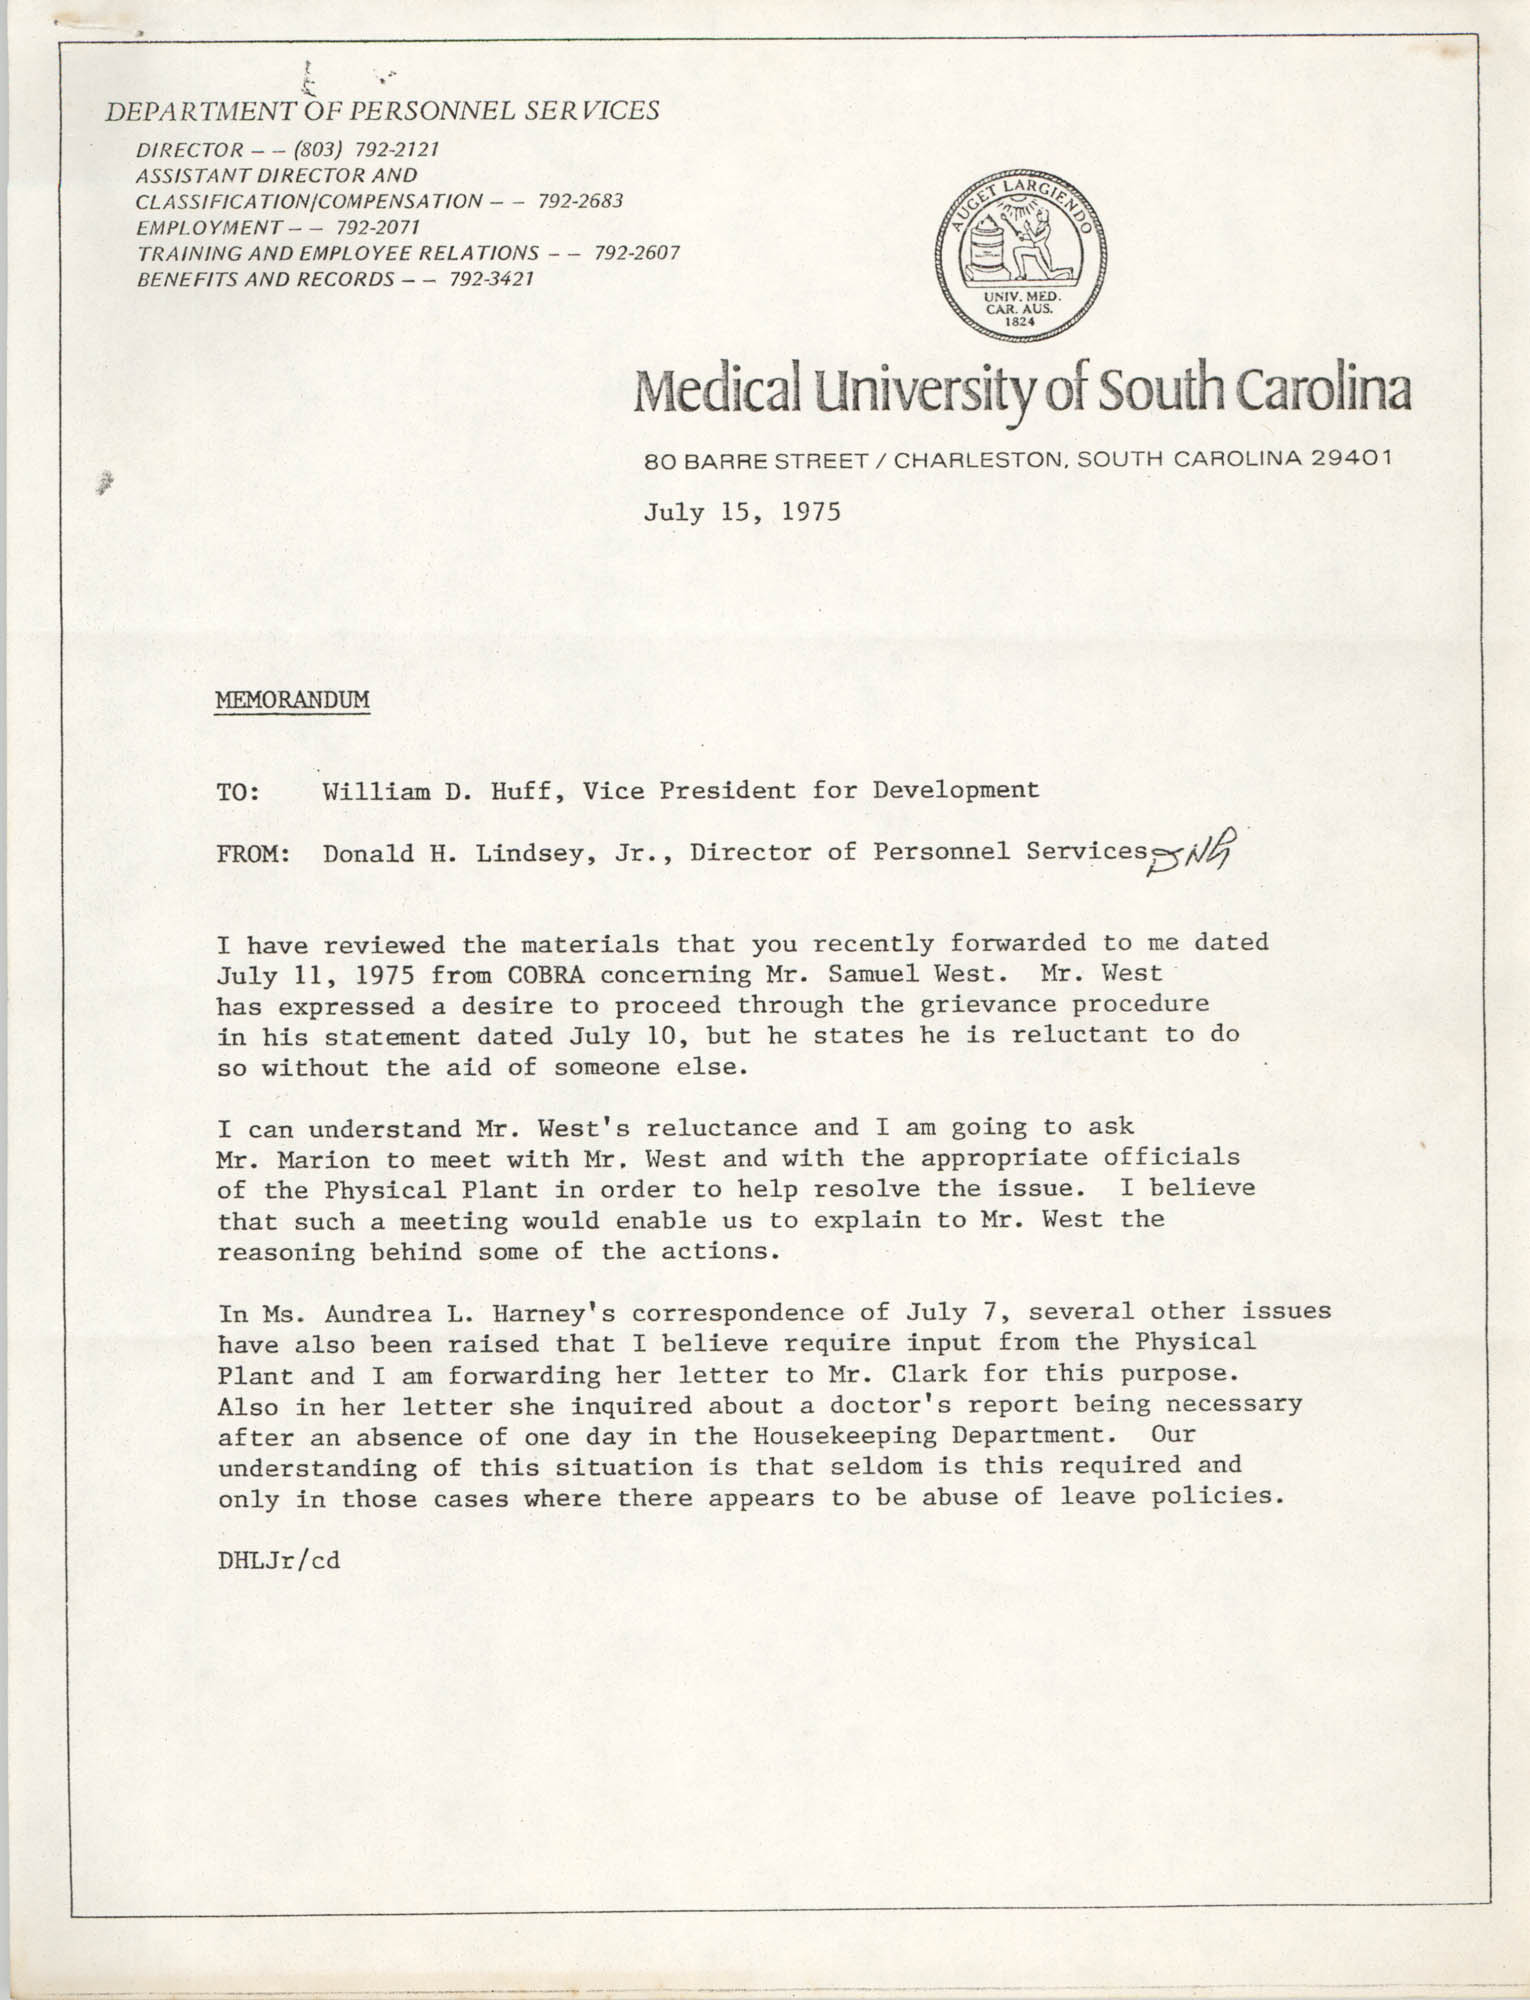 Medical University of South Carolina Memorandum, July 15, 1975